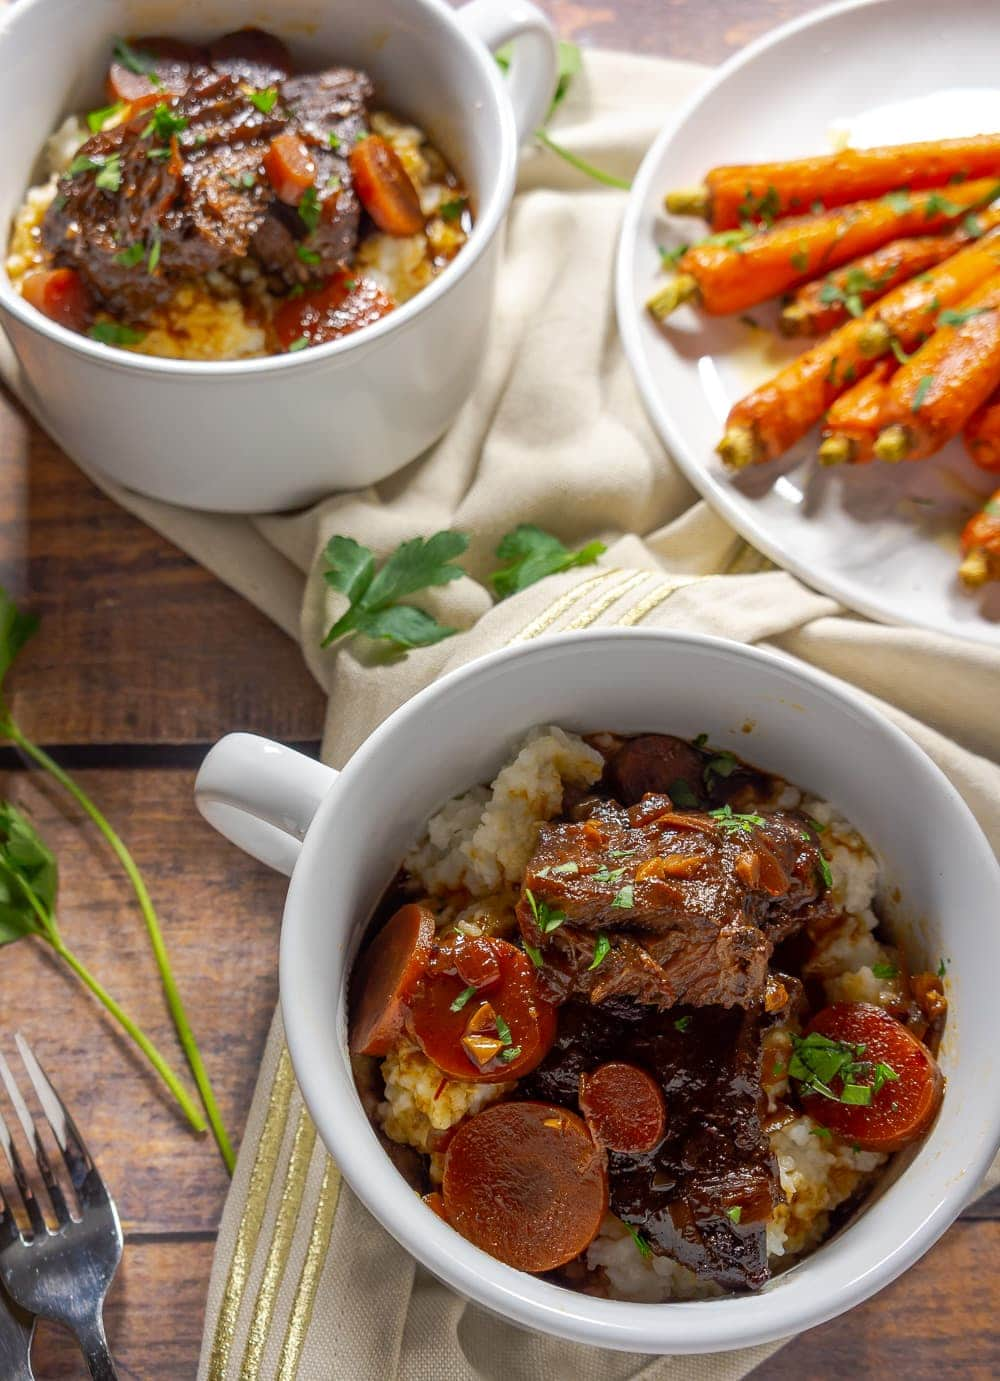 two white bowls of braised beef on a wooden table next to a plate of orange carrots